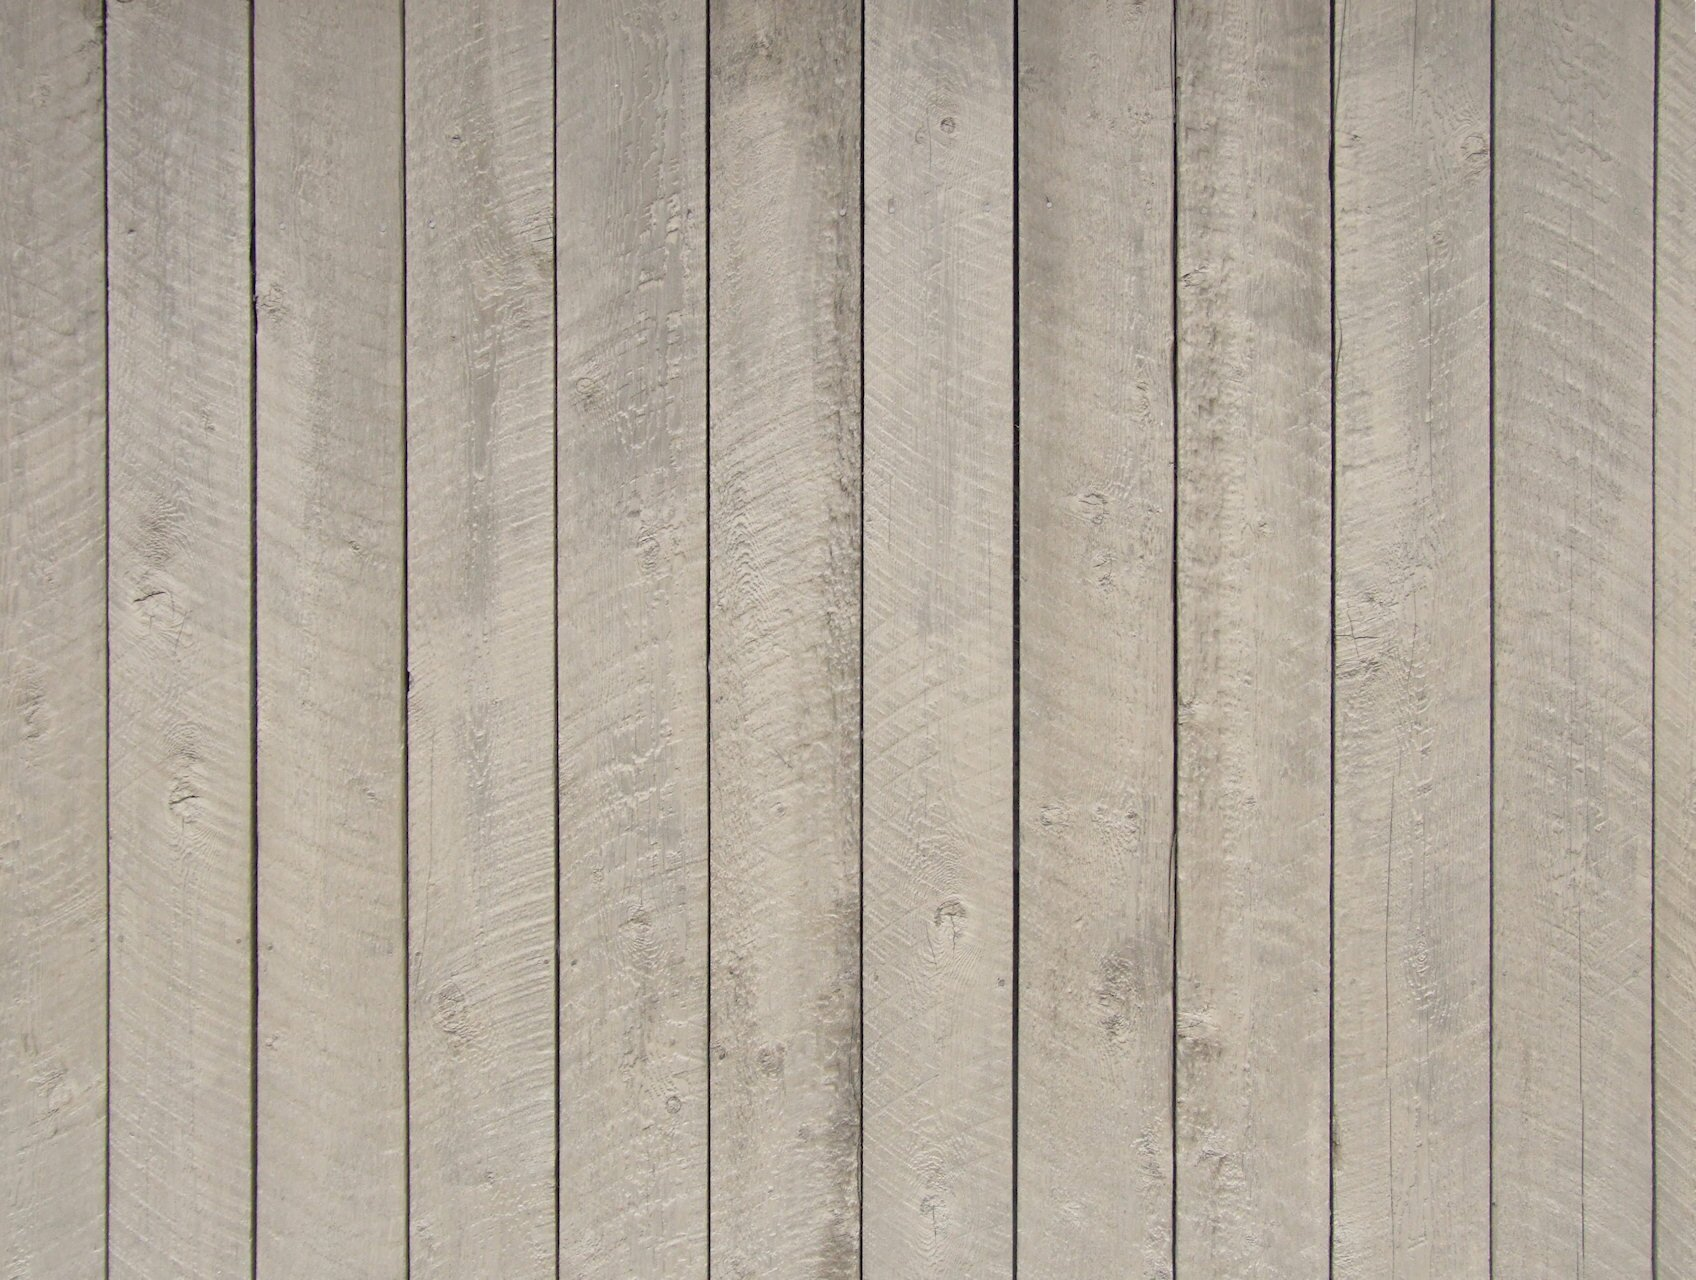 Best Texture For Walls Techcredo Wood Wall Texture 0008